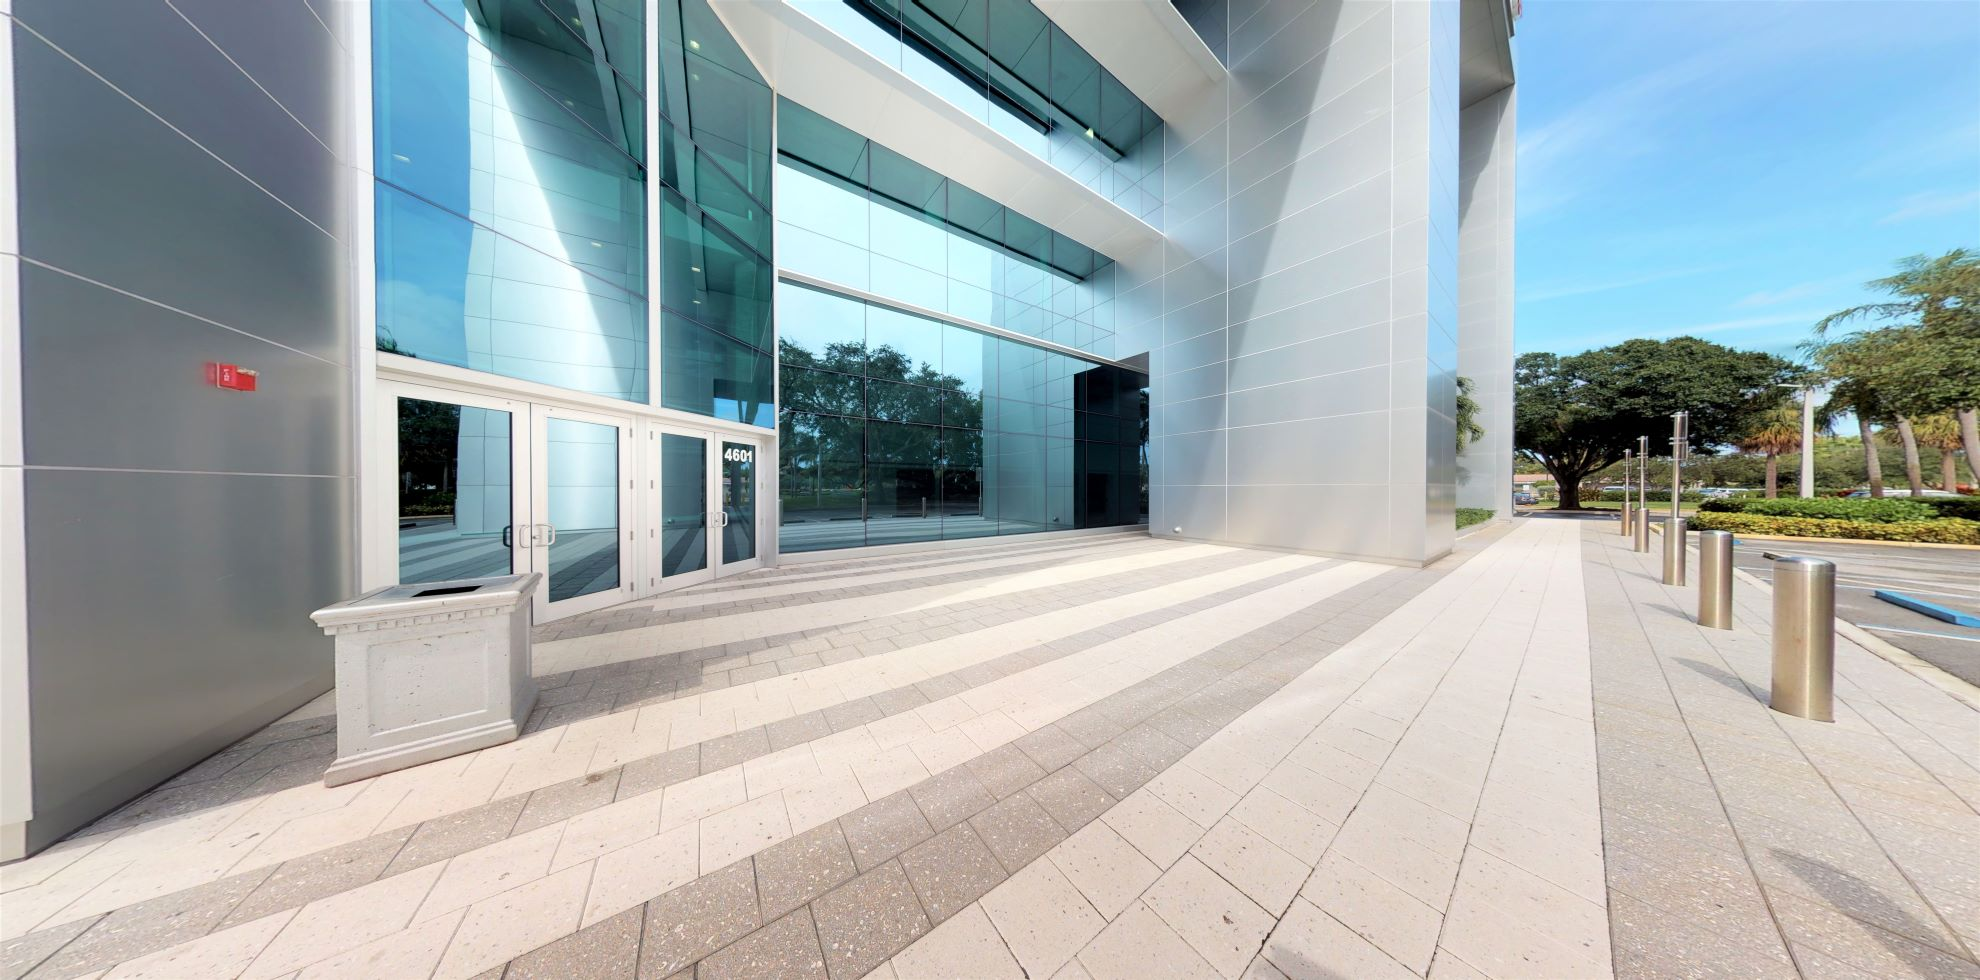 Bank of America financial center with drive-thru ATM and teller | 4601 Sheridan St, Hollywood, FL 33021